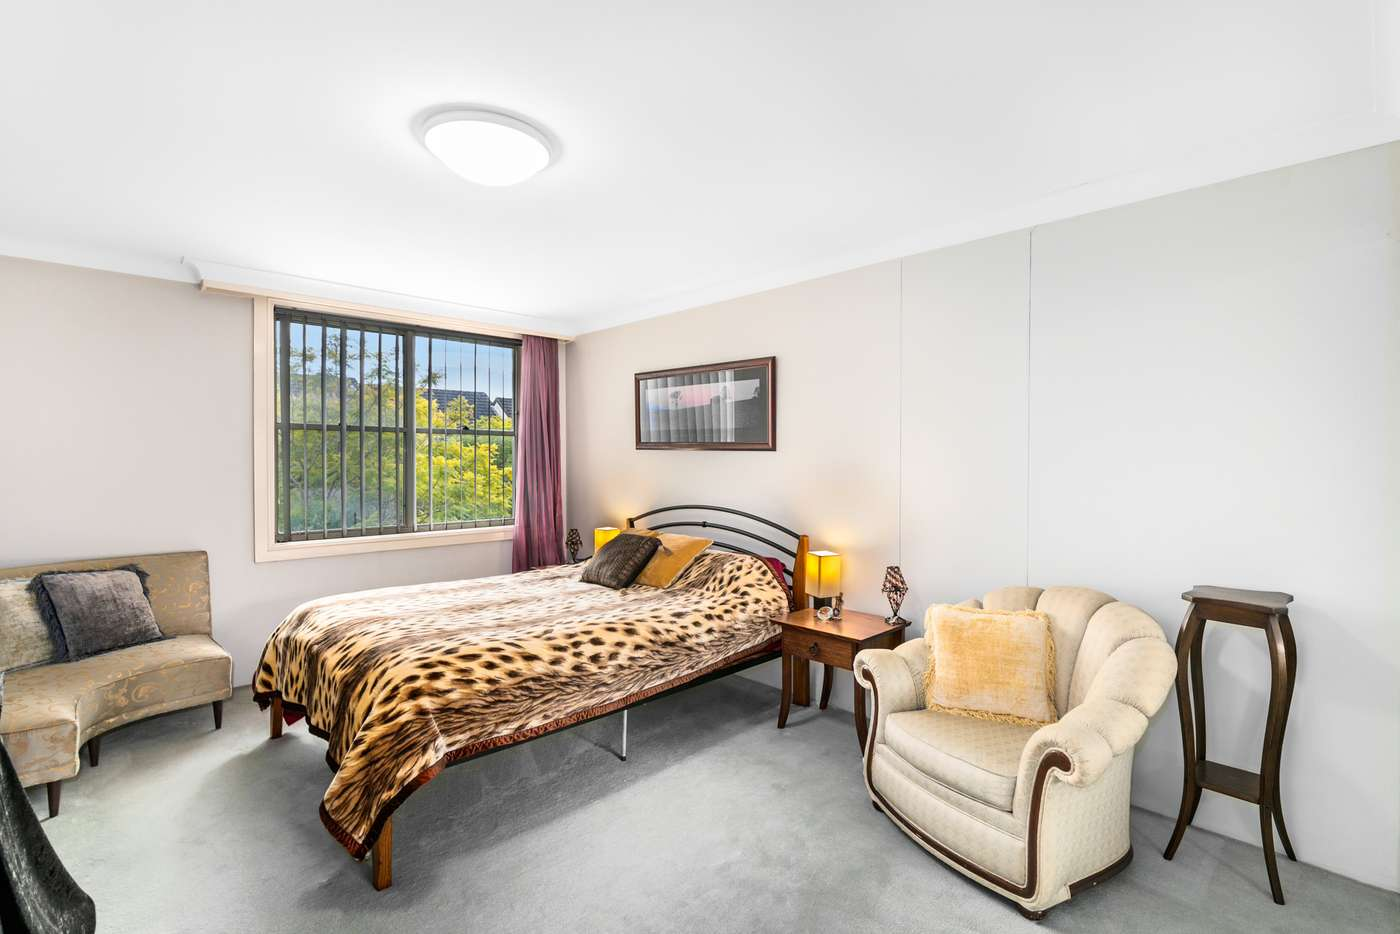 Fifth view of Homely apartment listing, 27/1 Harbourview Crescent, Abbotsford NSW 2046